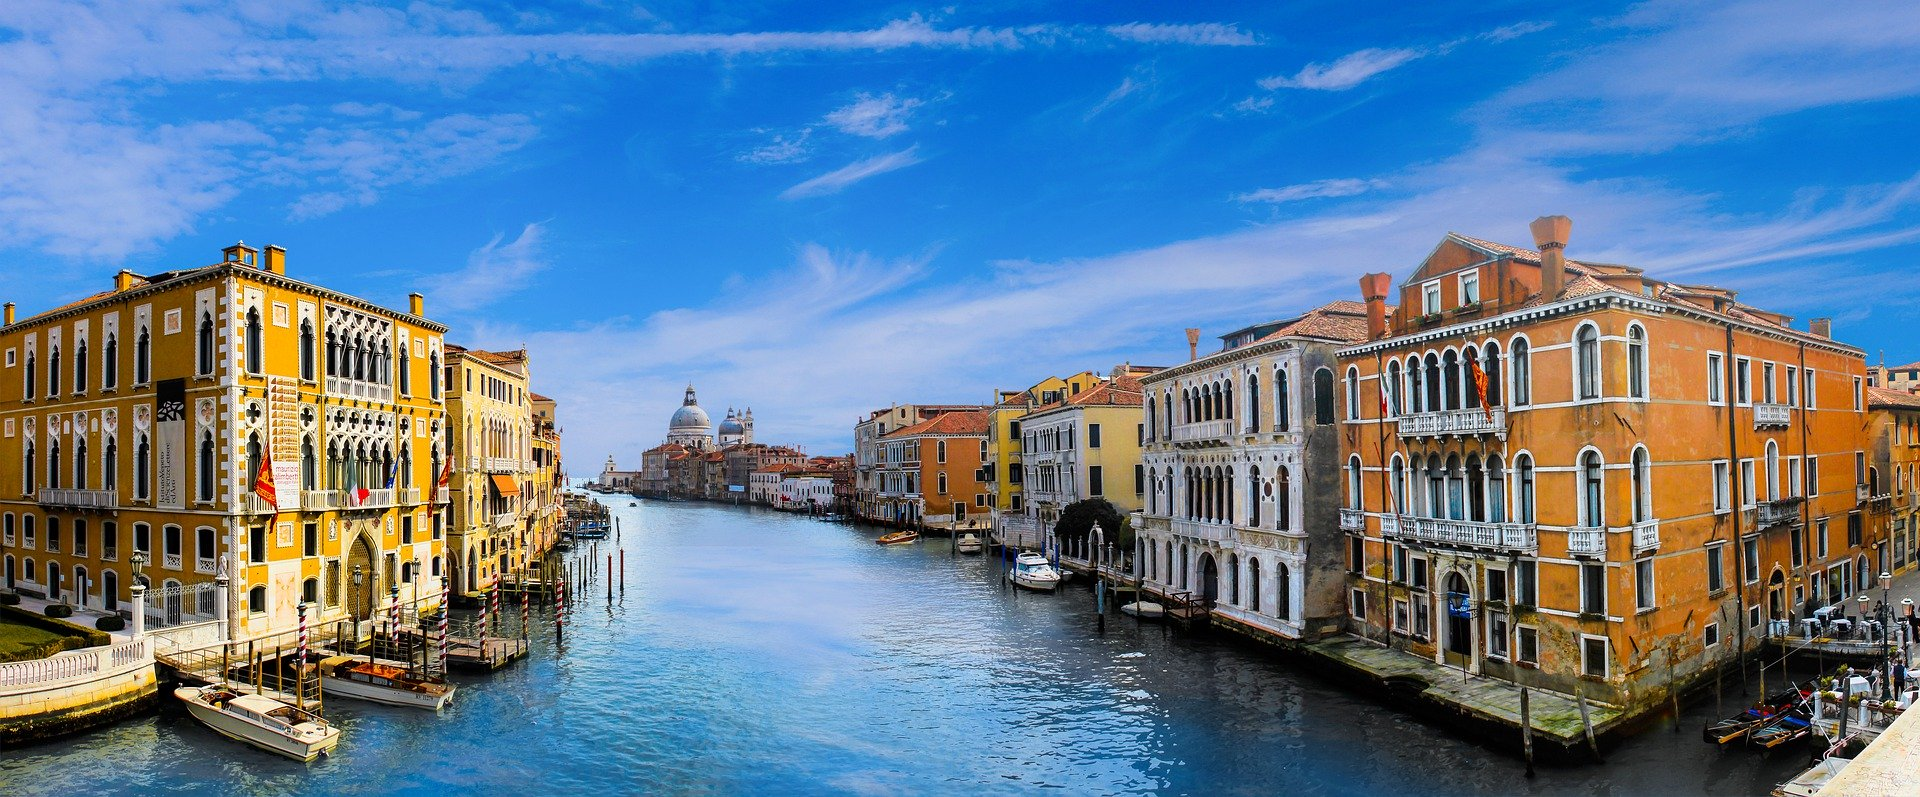 Why was Venice built on water?